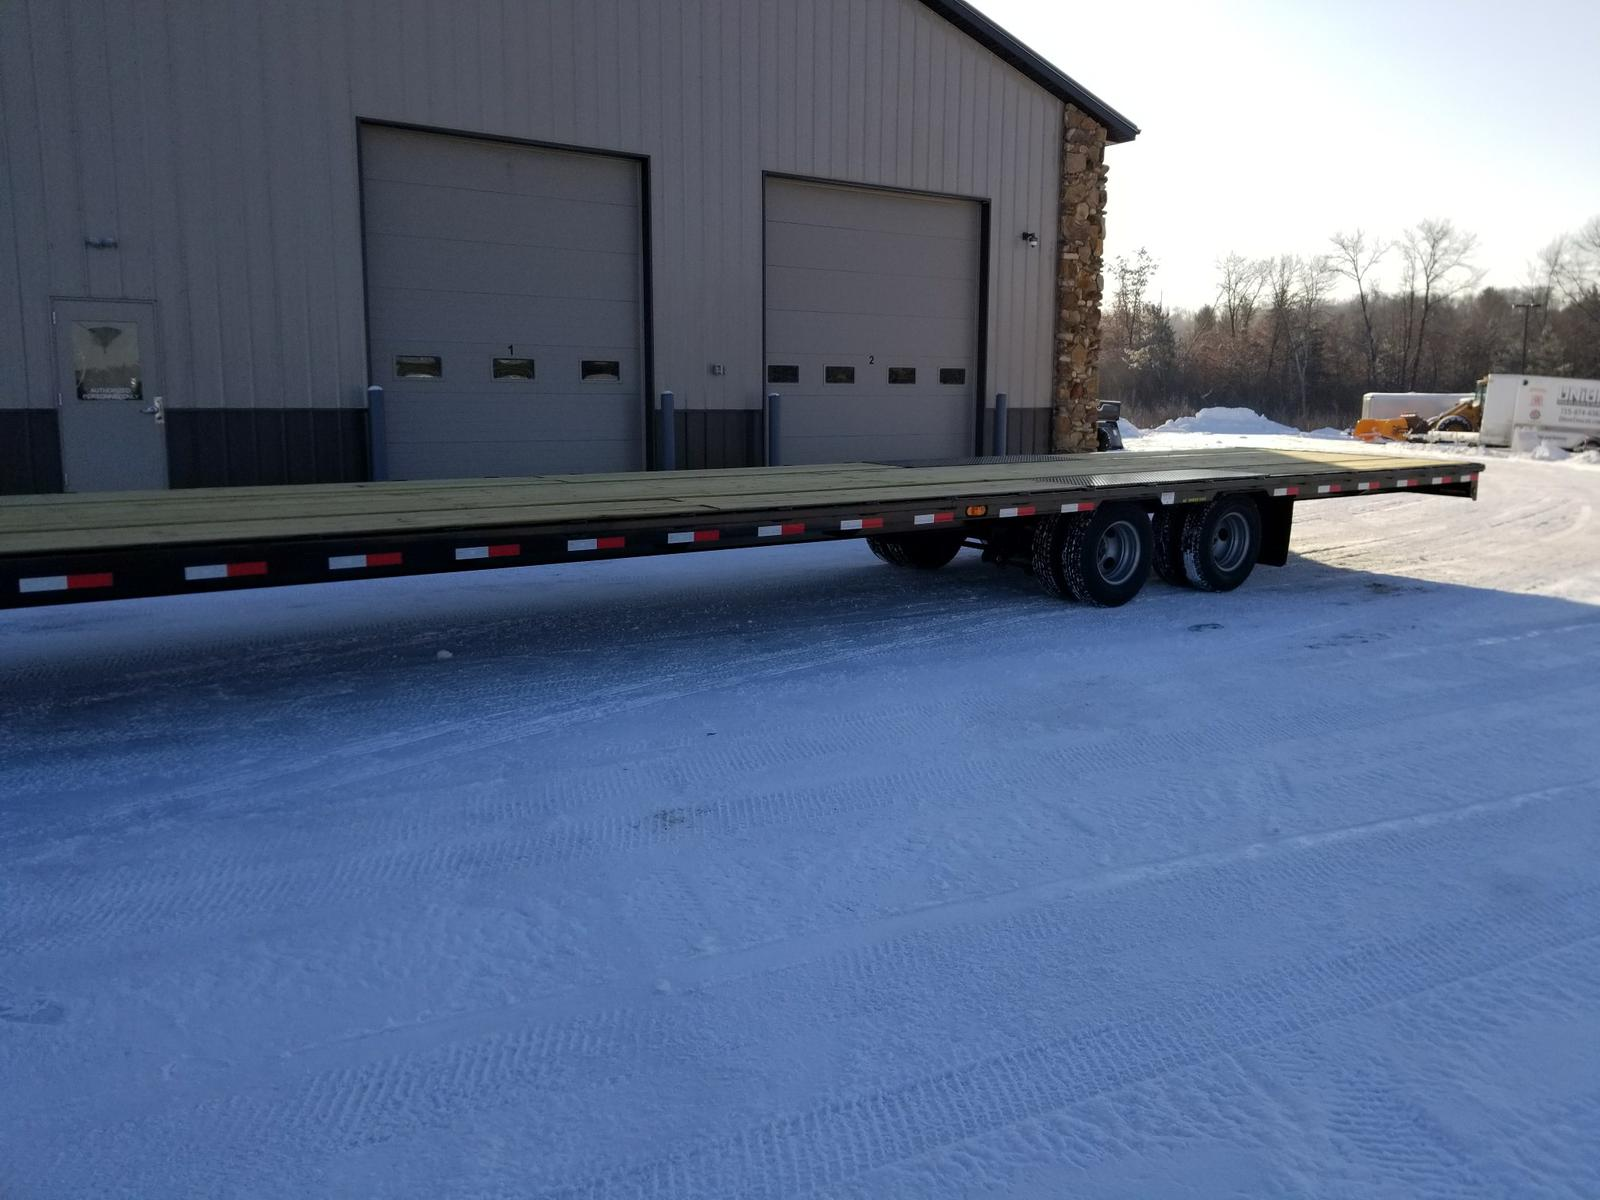 2019 Big Tex Trailers 22gn 102 X 40 239k Straight Deck Gooseneck Double Car Trailer 24 Foot Flatbed Previous